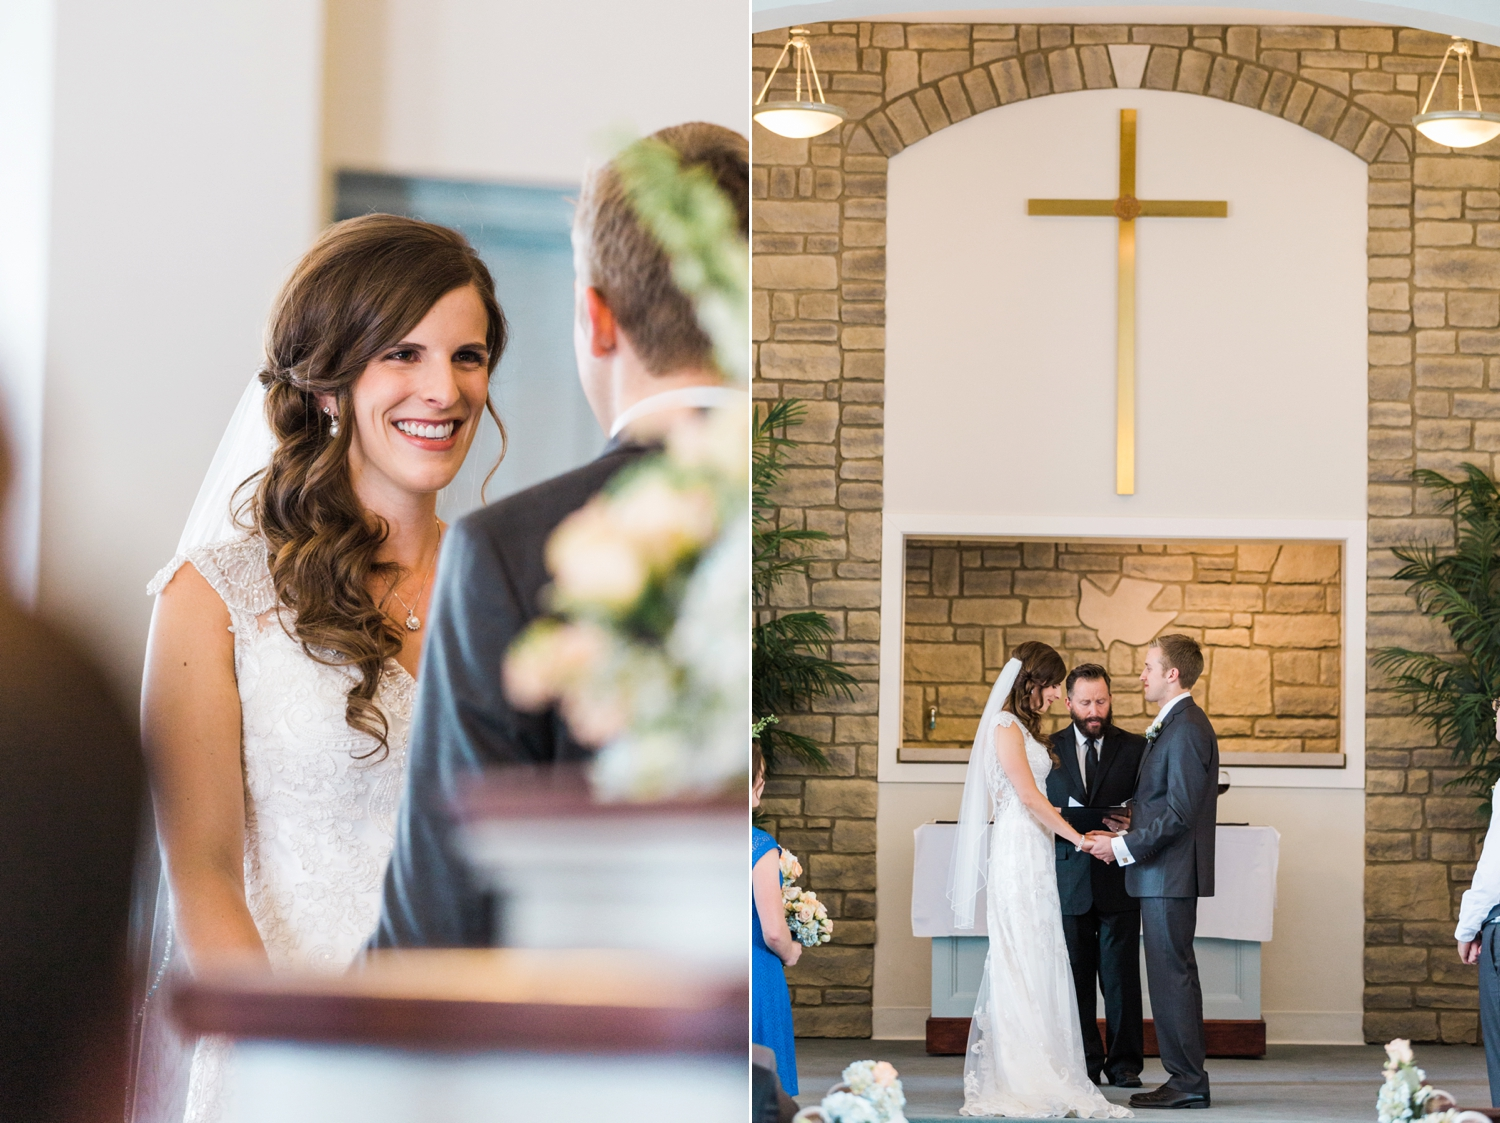 NCR_Country_Club_Kettering_Ohio_Wedding_Photography_Chloe_Luka_Photography_7143.jpg